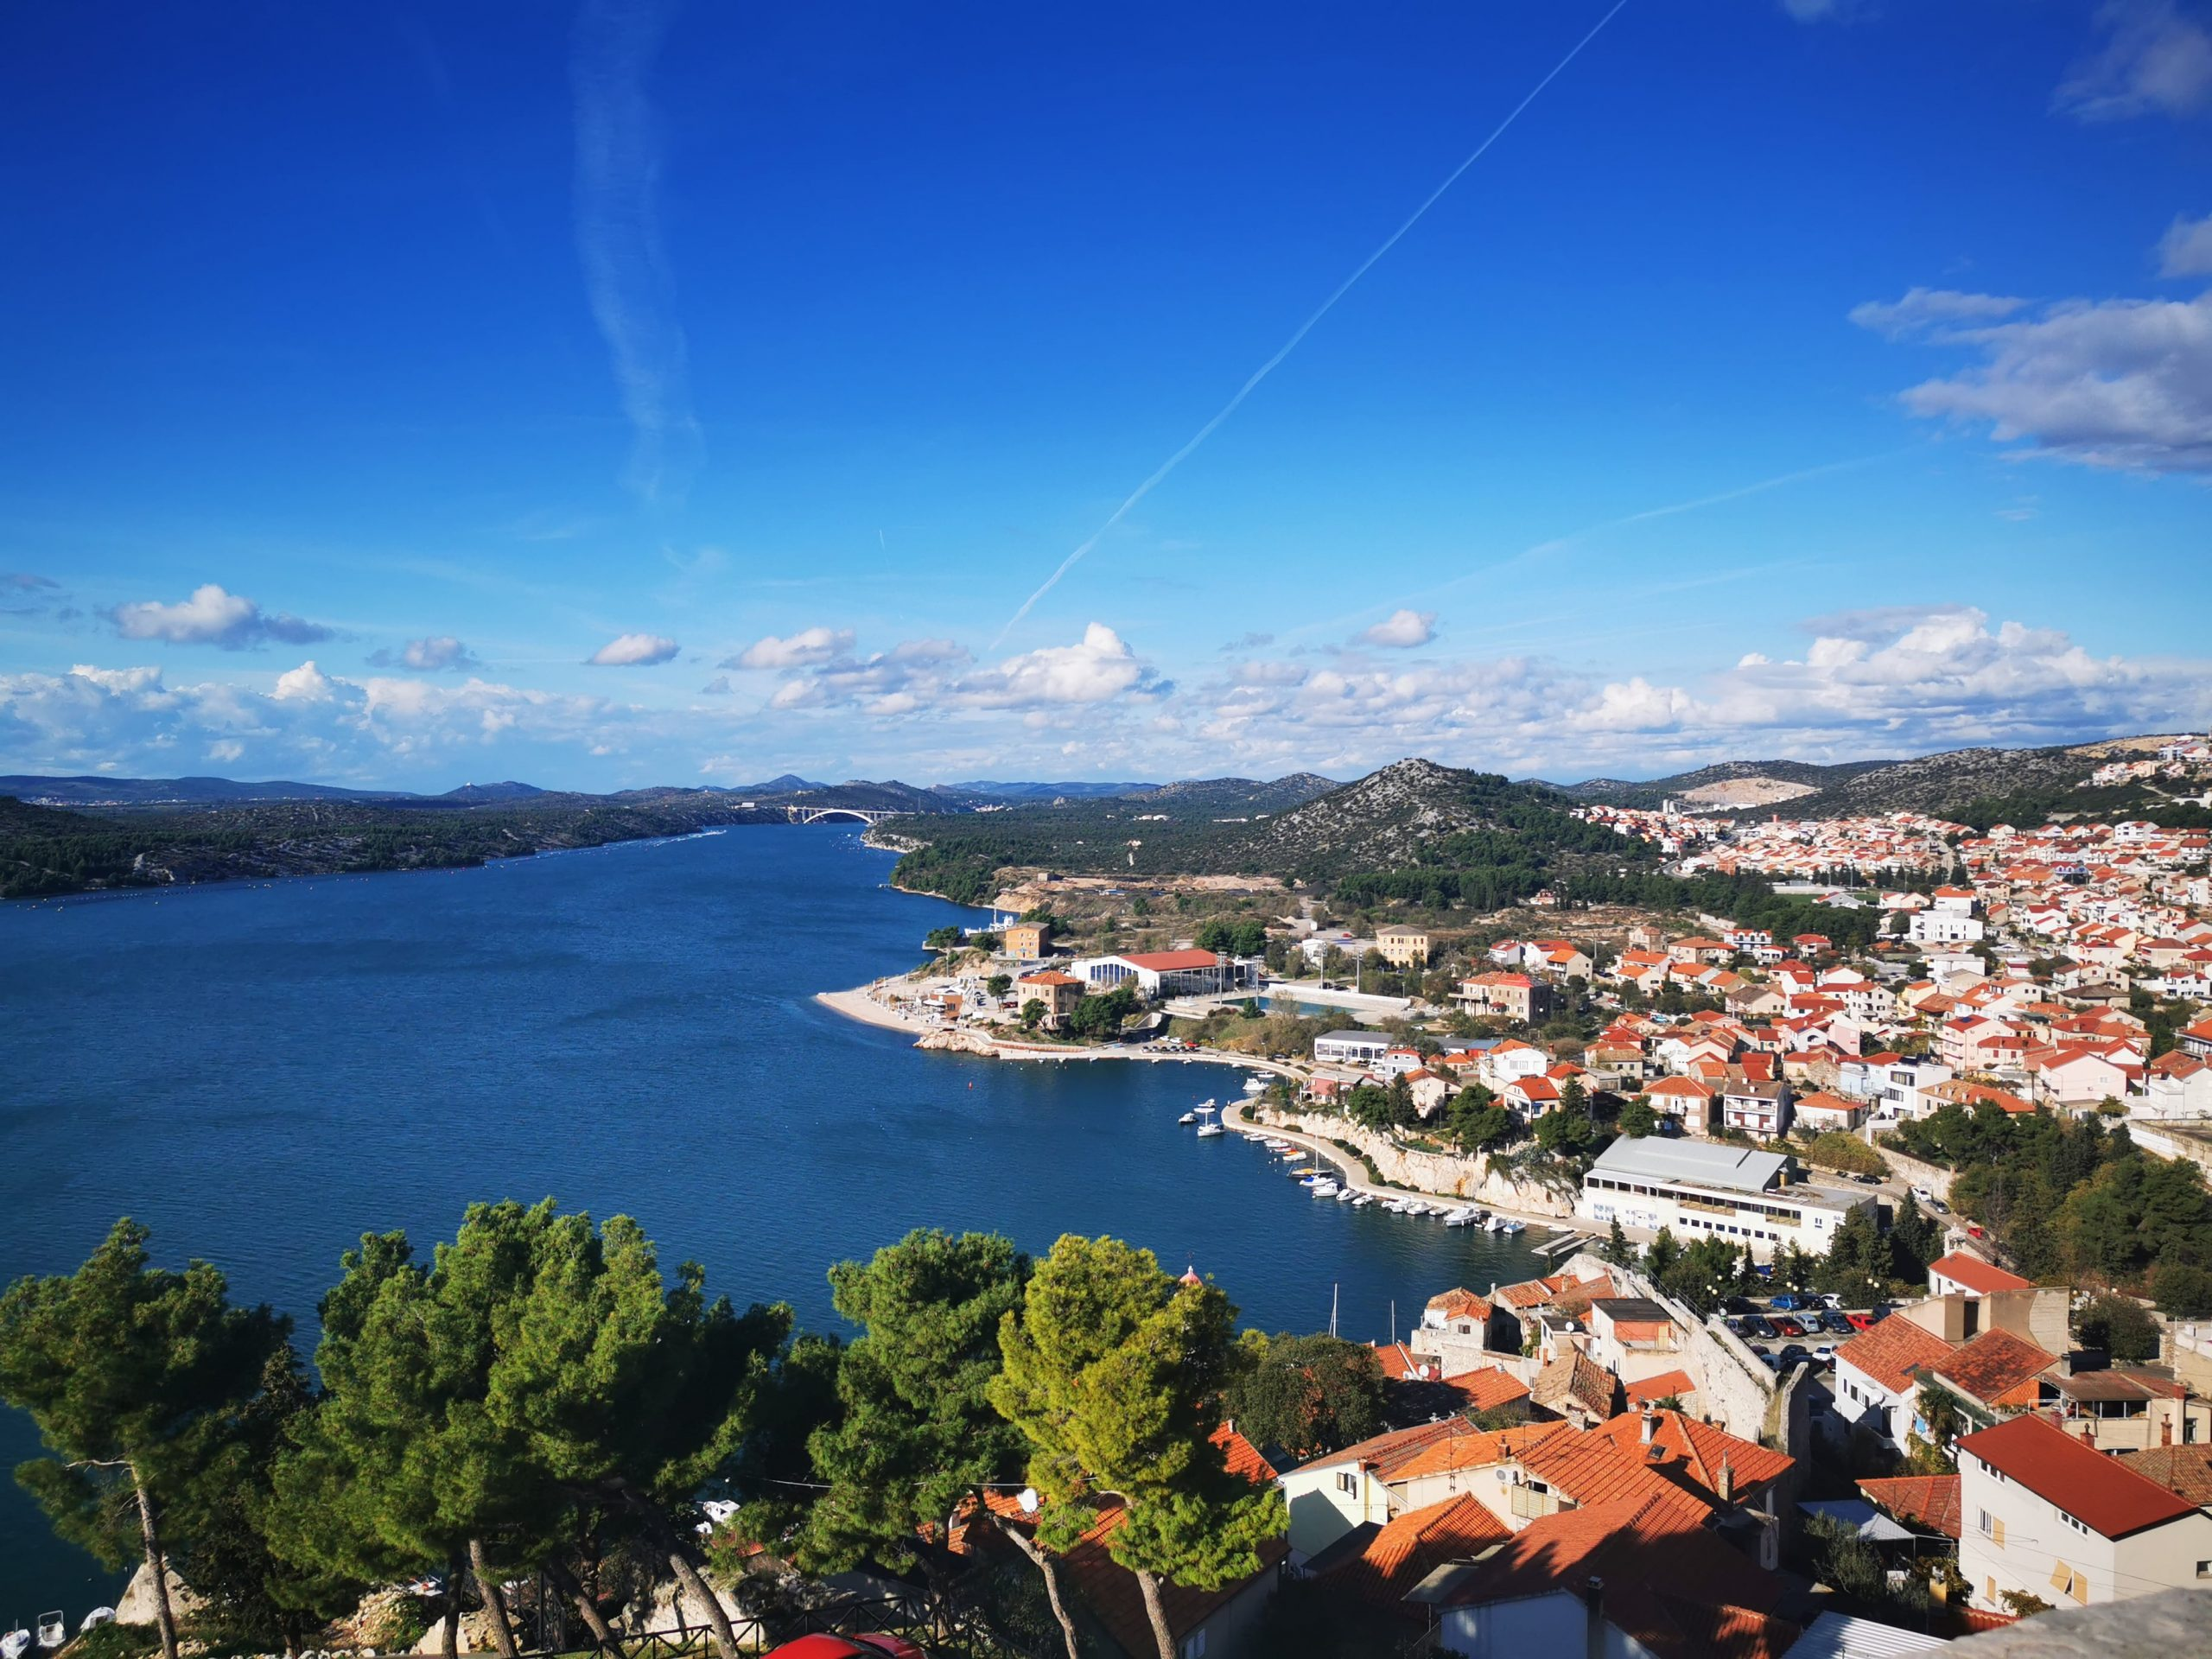 View in Šibenik